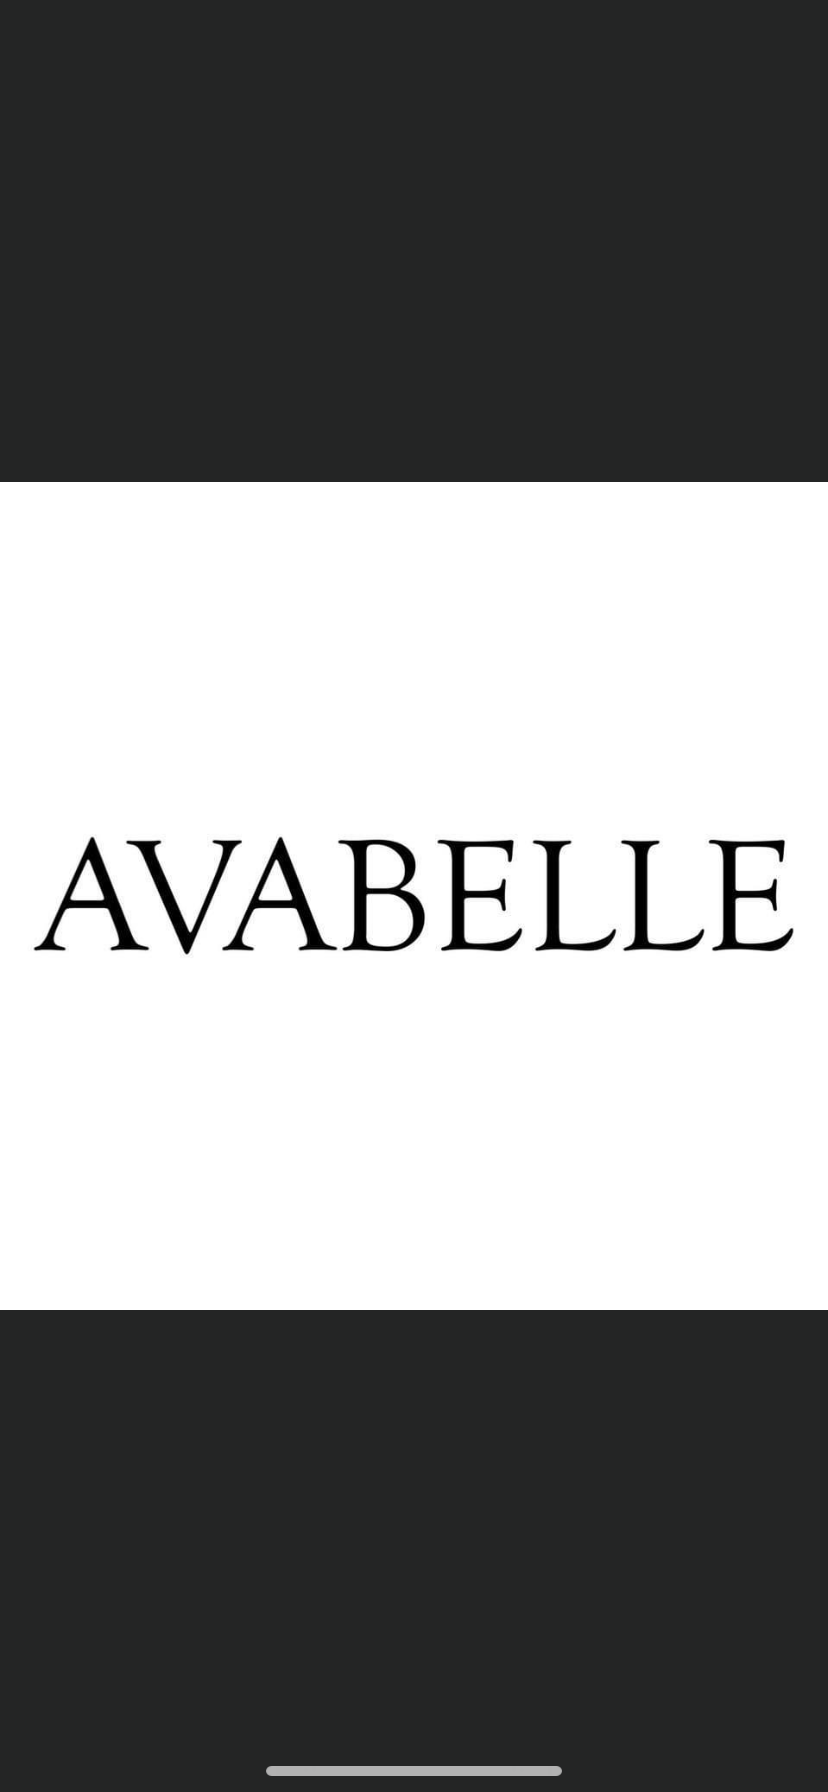 Avabelle